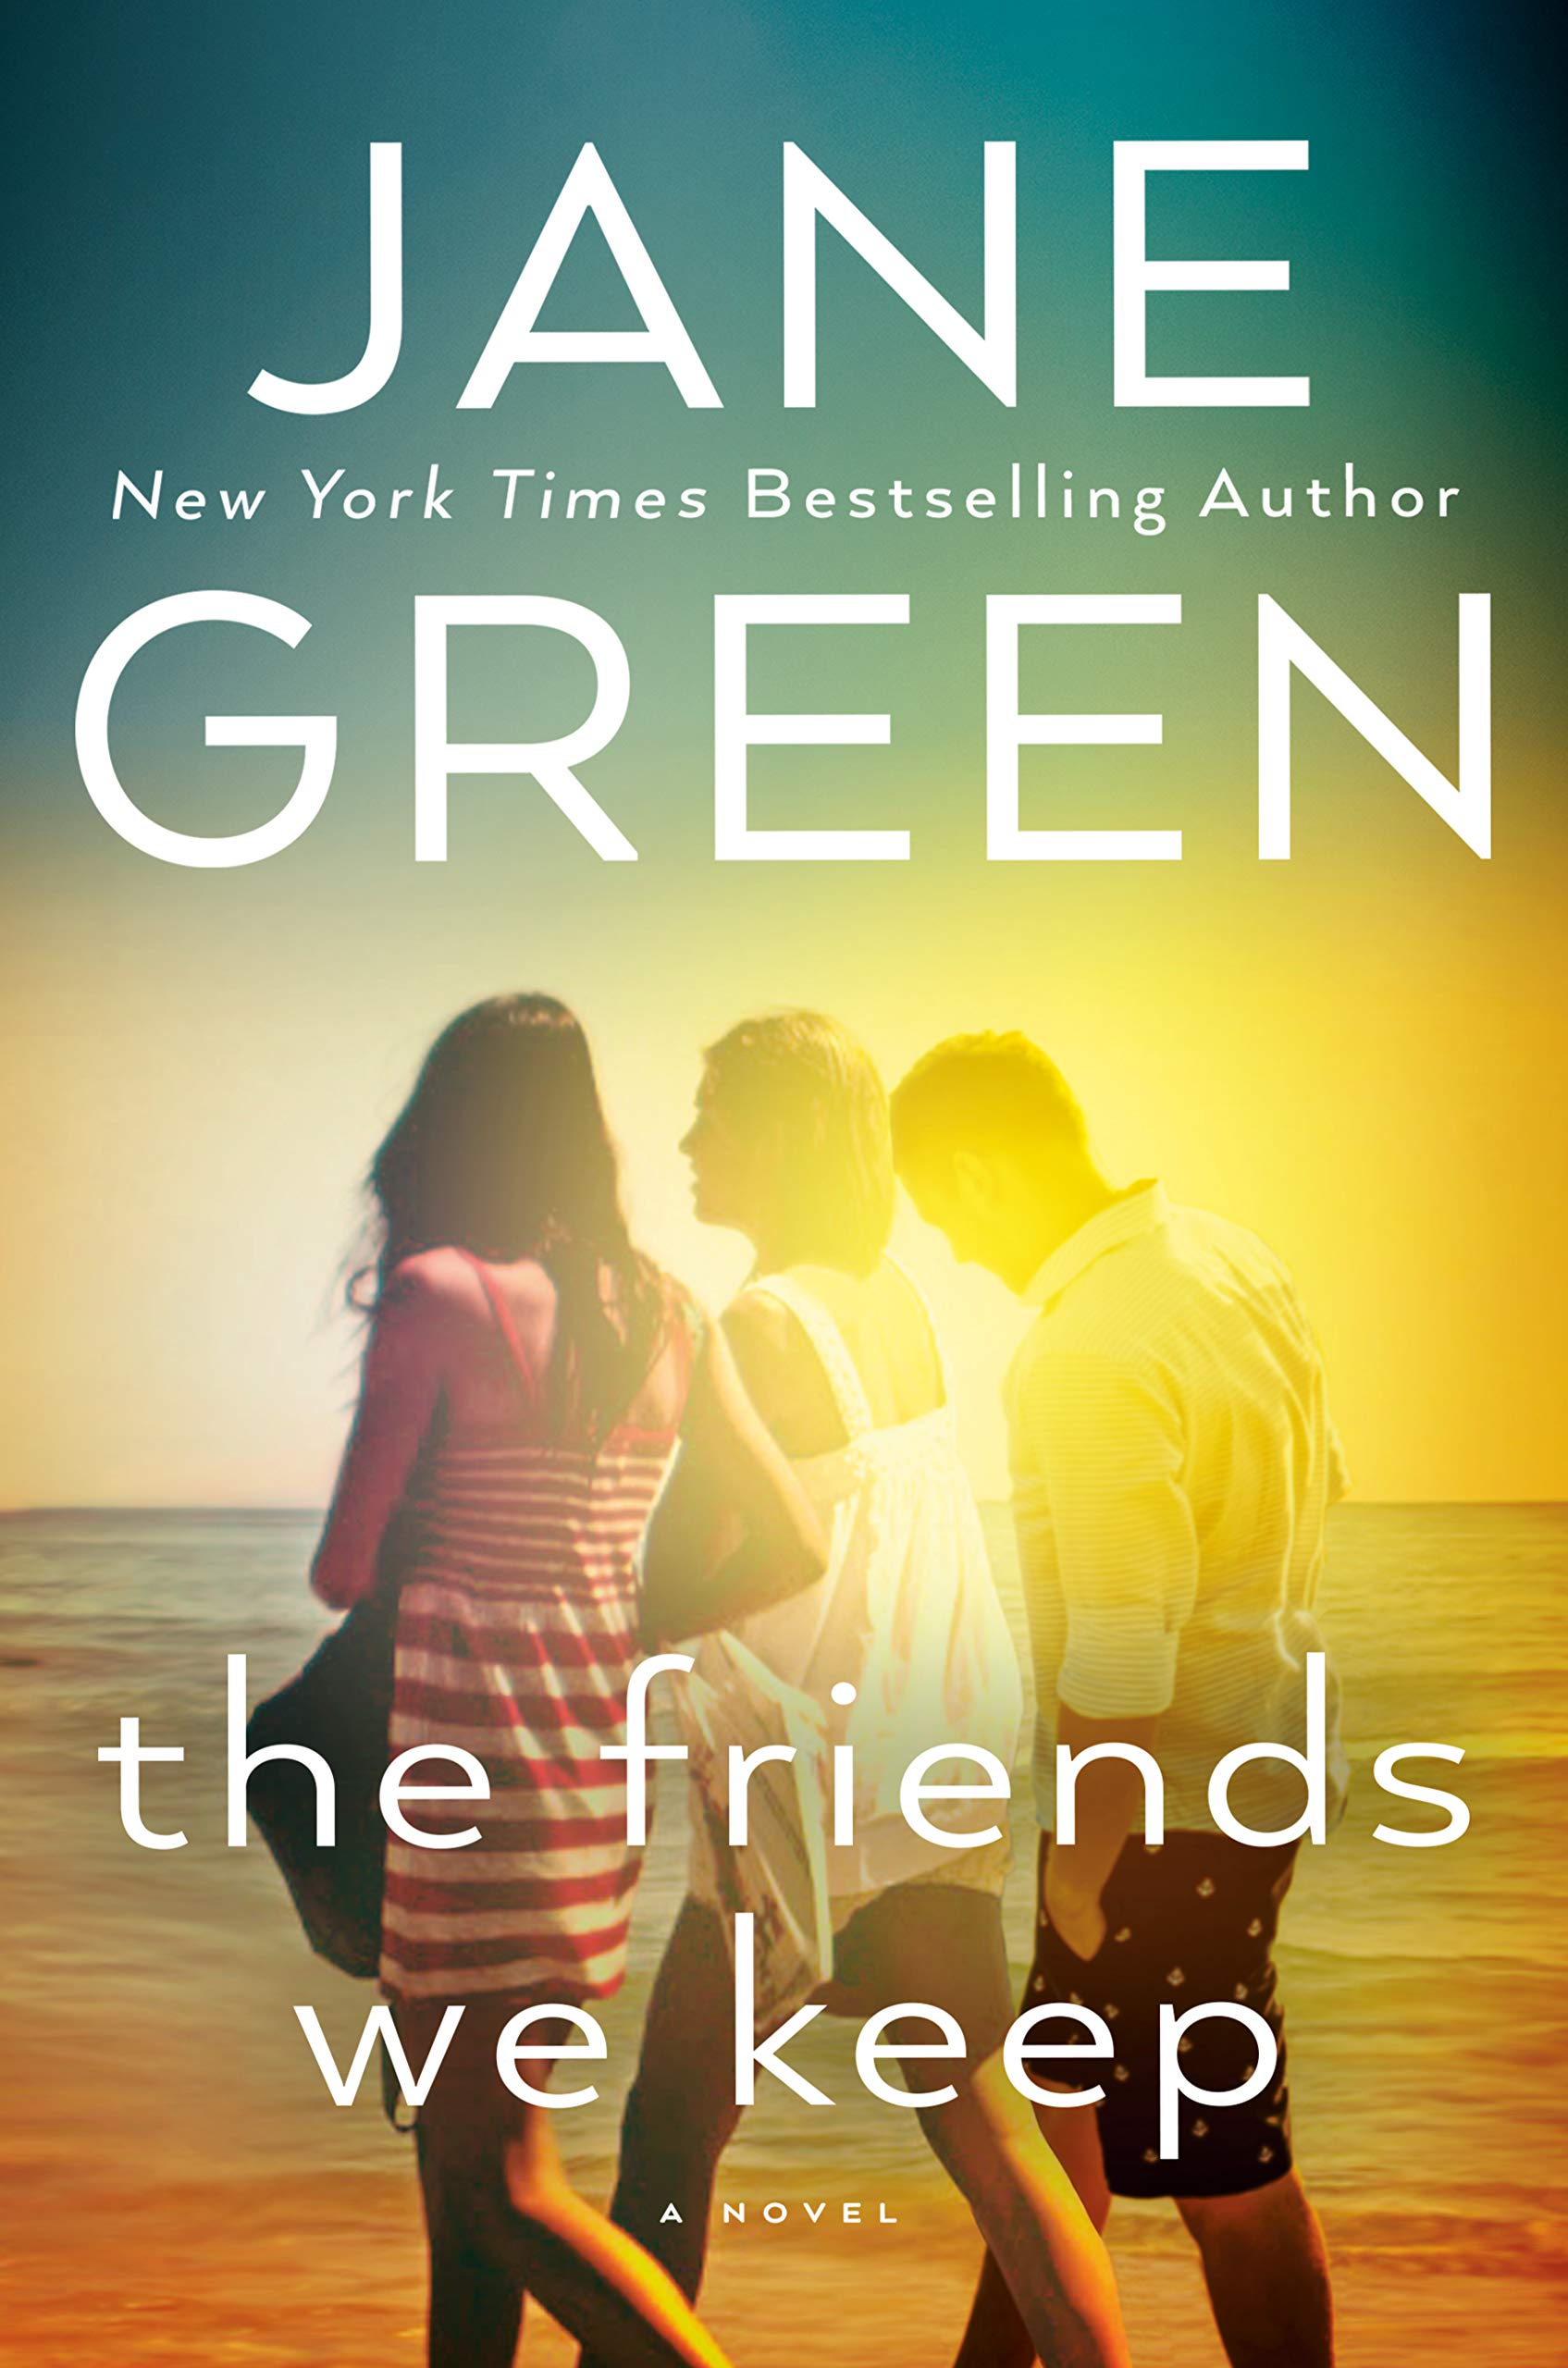 The Friends We Keep - Summer Reading List 2019 | Rhyme & Reason